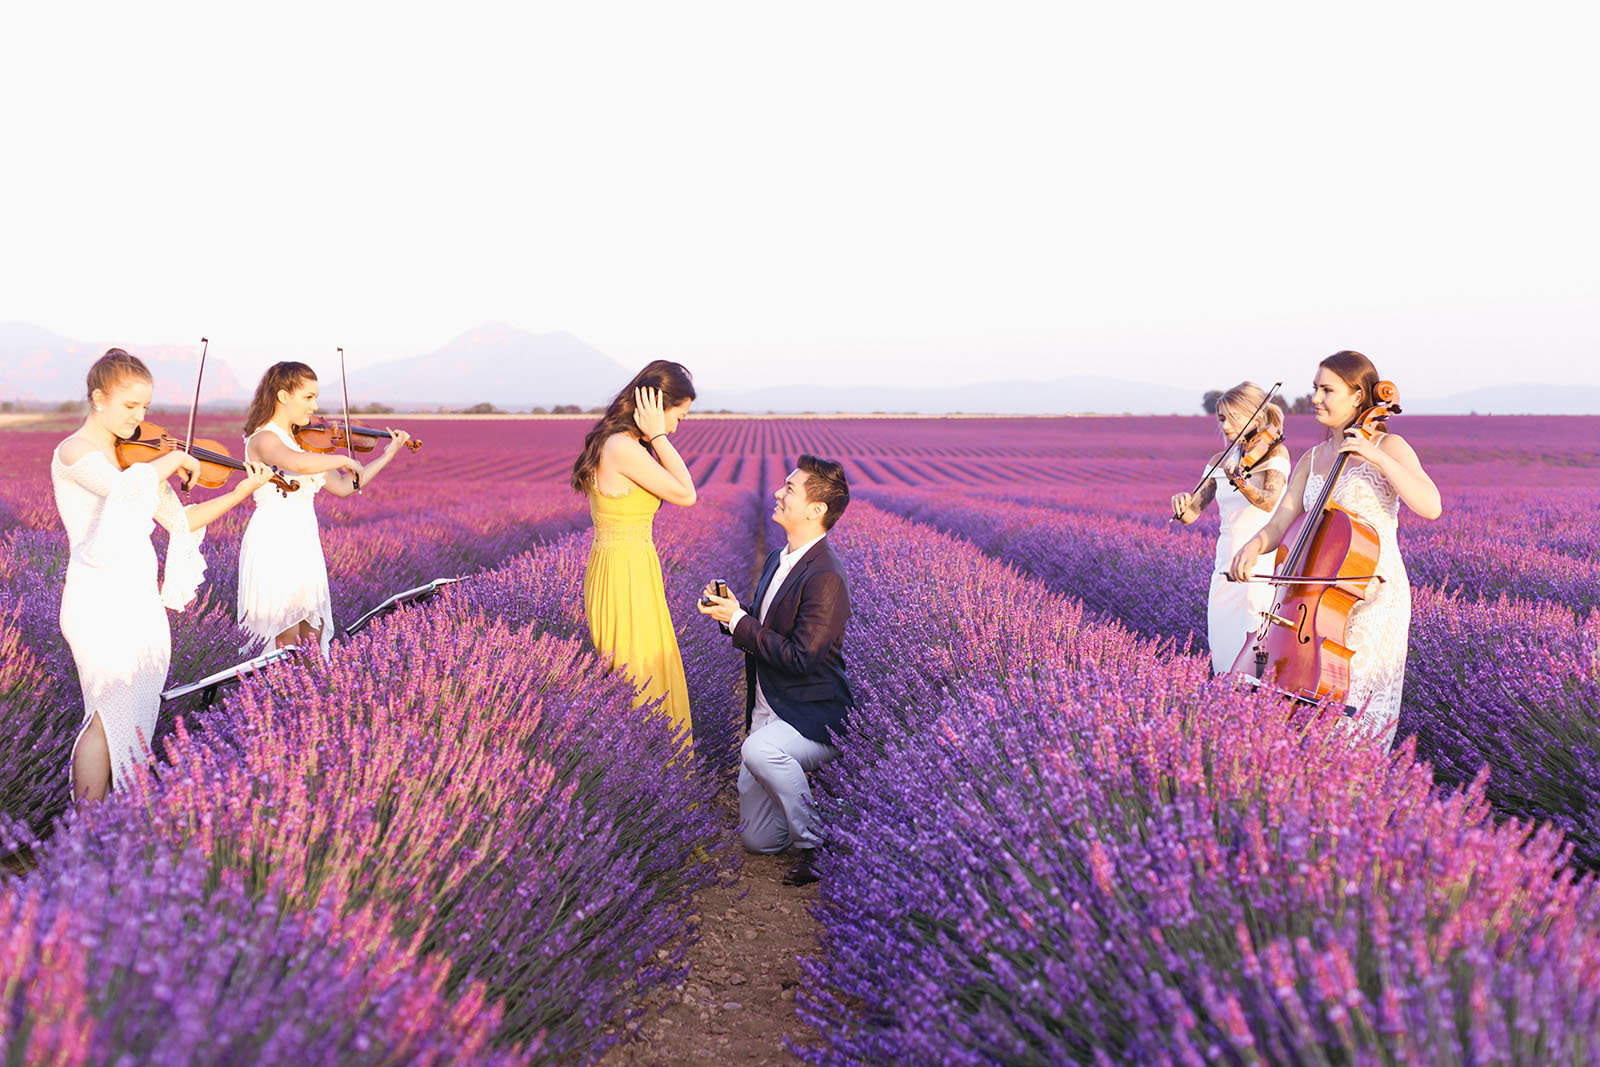 A romantic proposal at the lavender fields of Provence